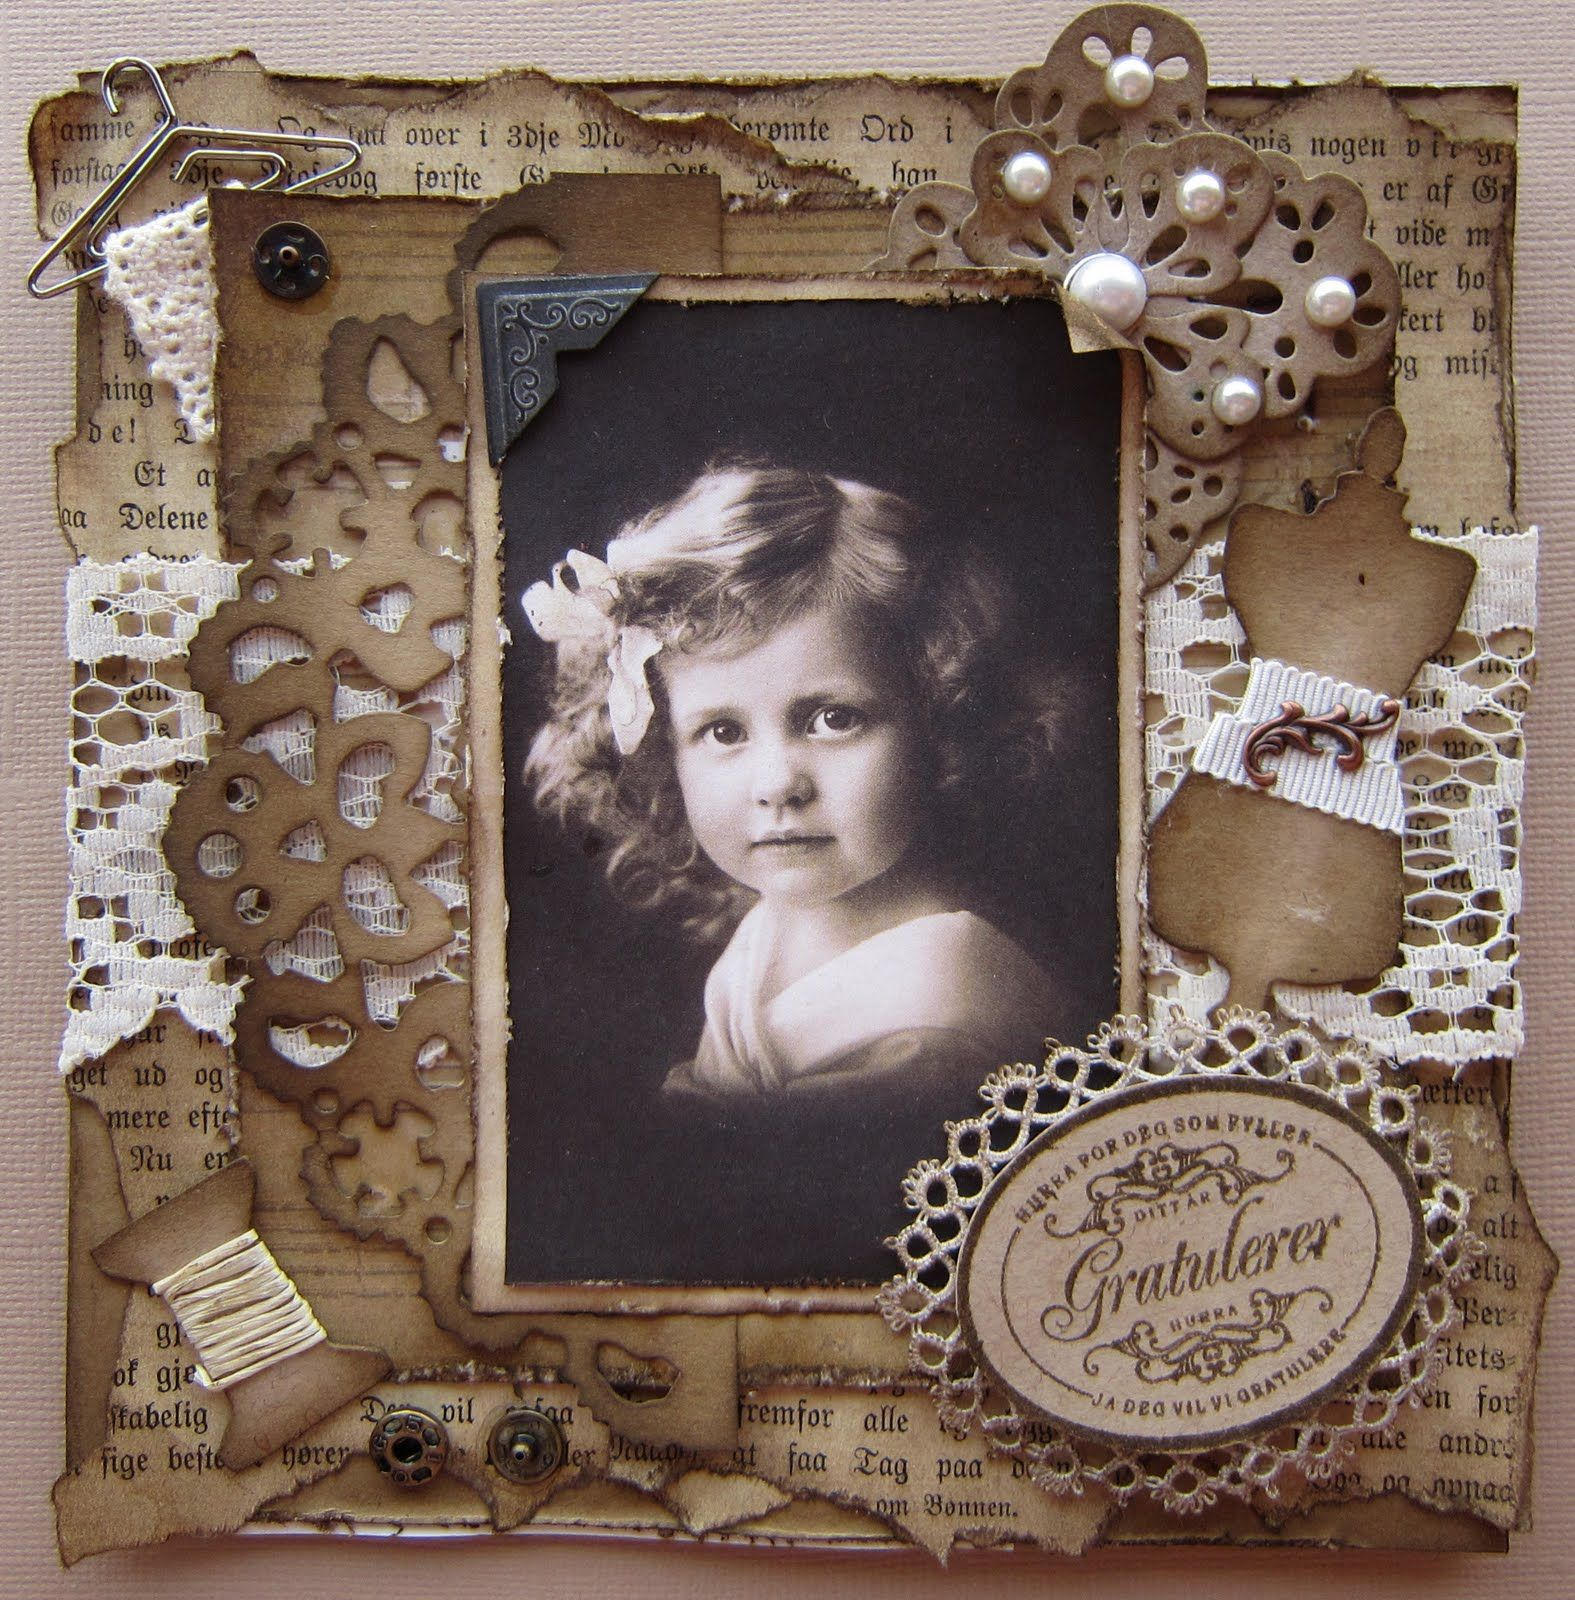 37 Exclusive Picture Of Vintage Scrapbooking Ideas Vintage Scrapbooking Ideas Vin Scrapbooking Layouts Vintage Vintage Scrapbook Heritage Scrapbooking Layouts